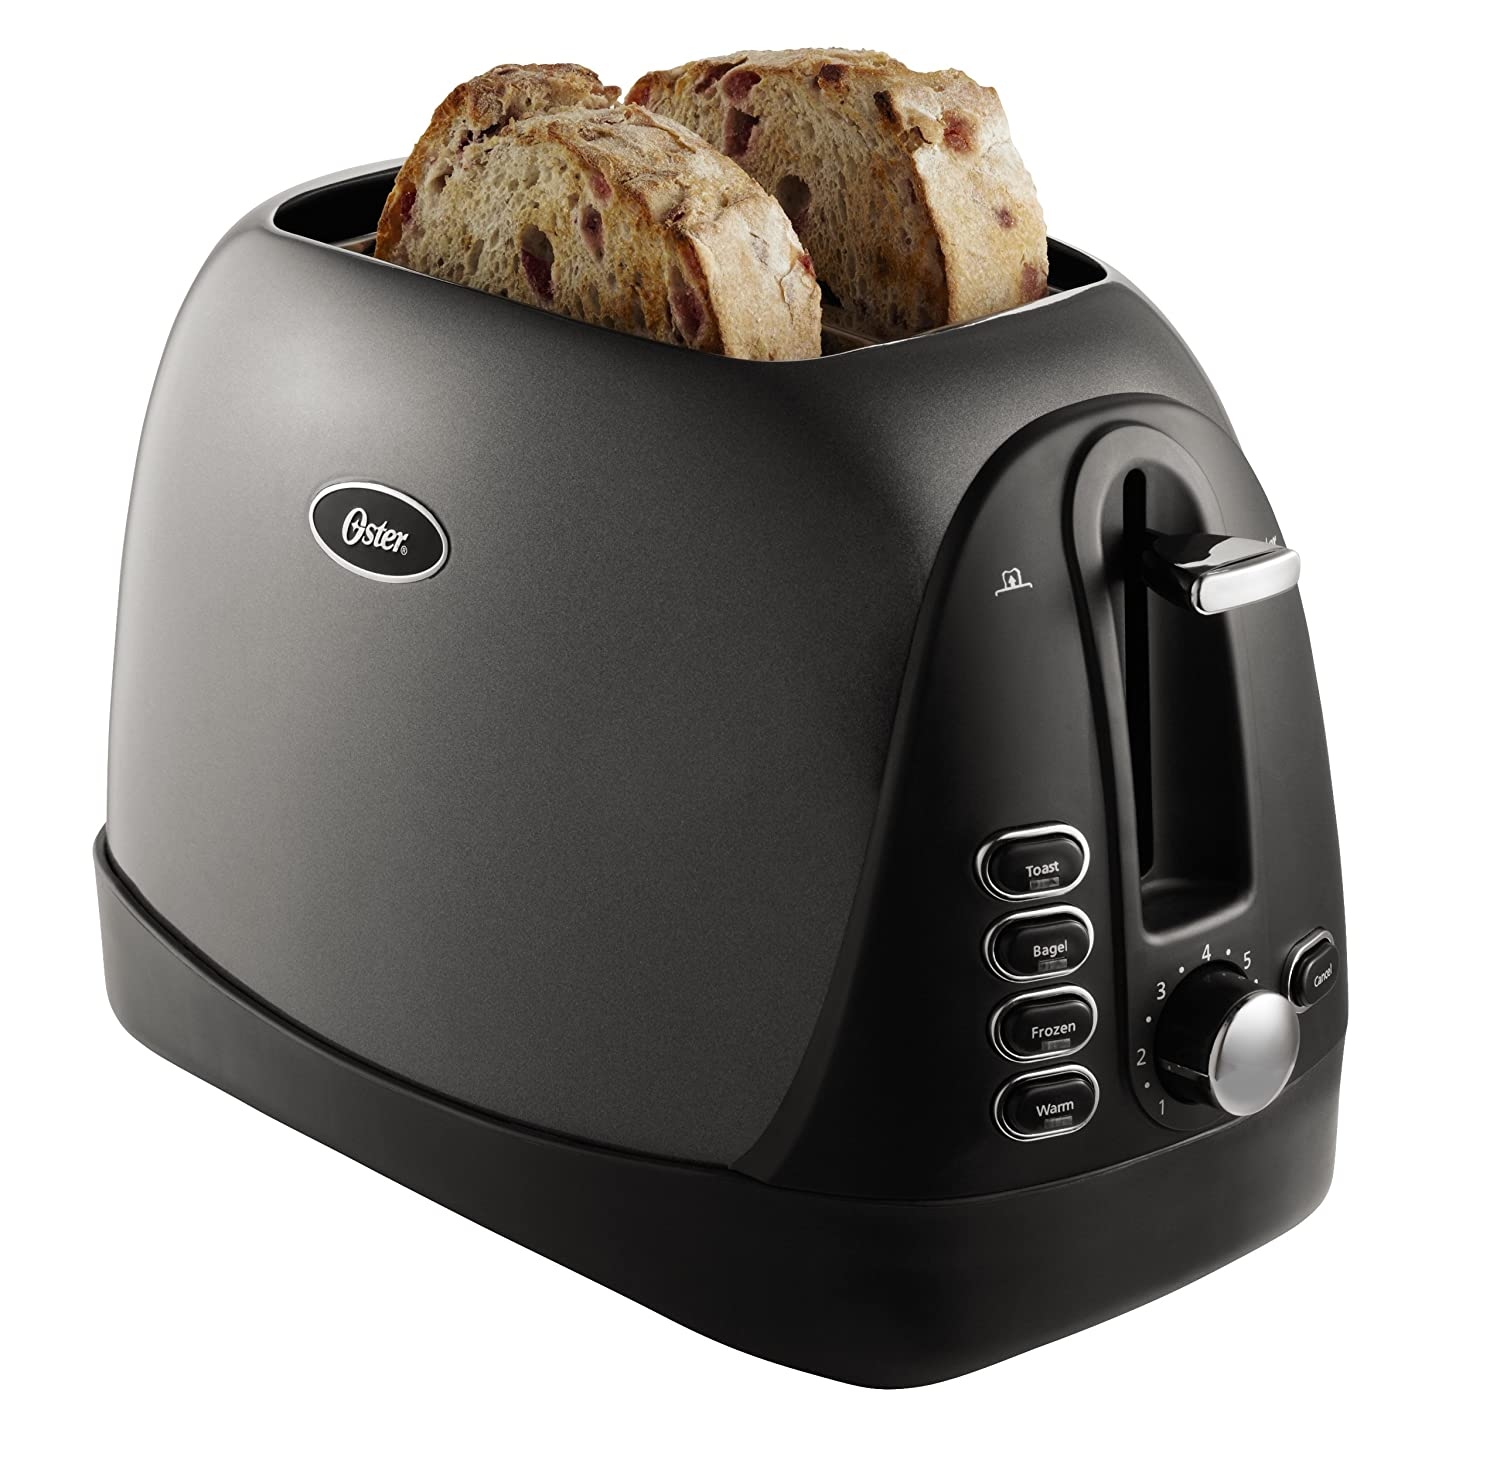 Oster 2-Slice Toaster, Metallic Grey (TSSTTRJBG1)